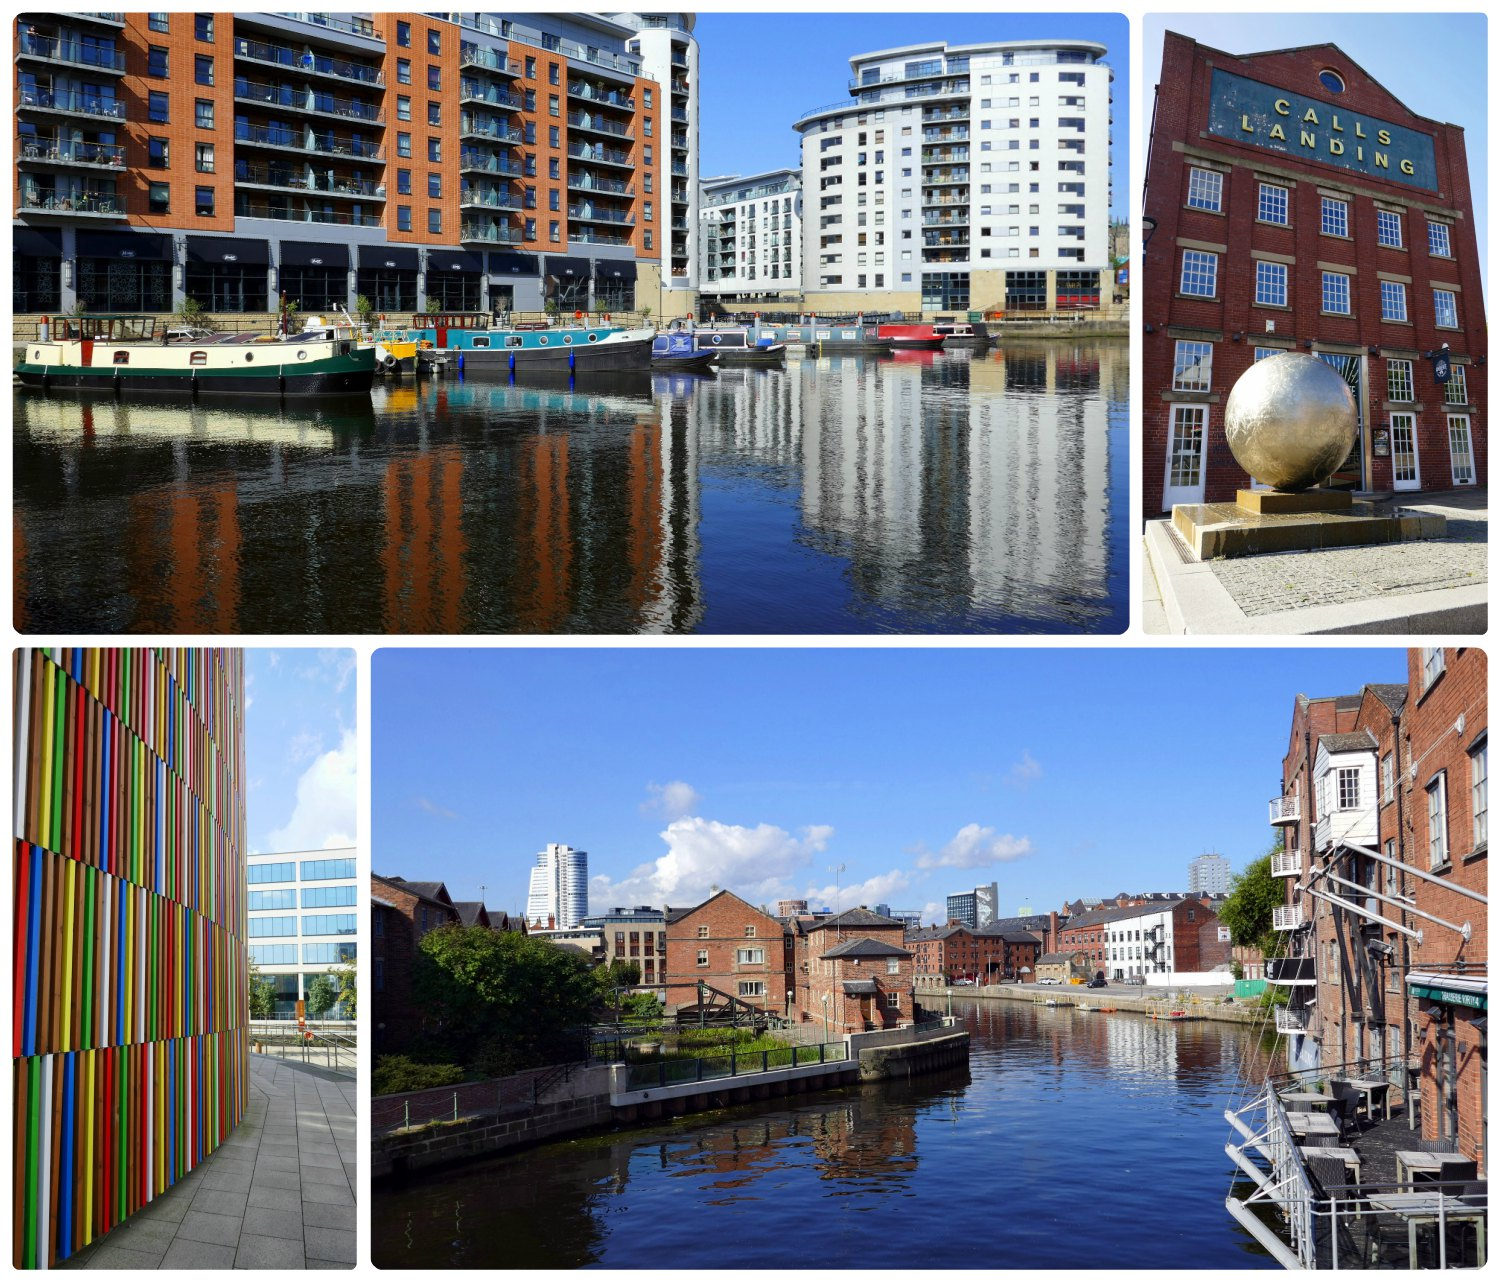 The walk to the Royal Armouries Museum was full of great views and colorful architecture. The only better way to get to the museum might be the  Leeds Dock Water Taxi  (it's free)!